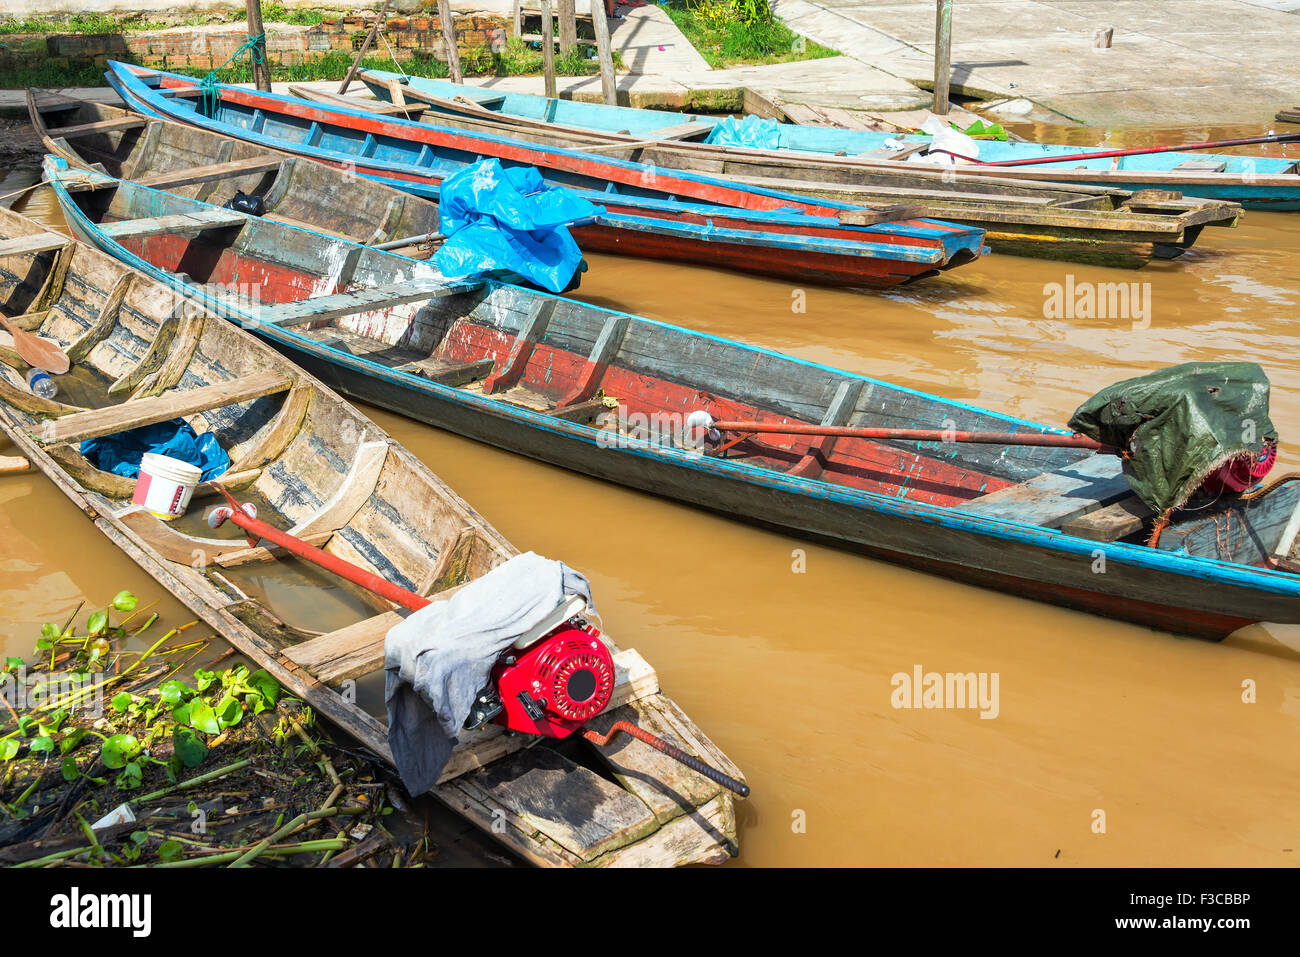 Canoes tied to shore floating on the Amazon River near Iquitos, Peru - Stock Image